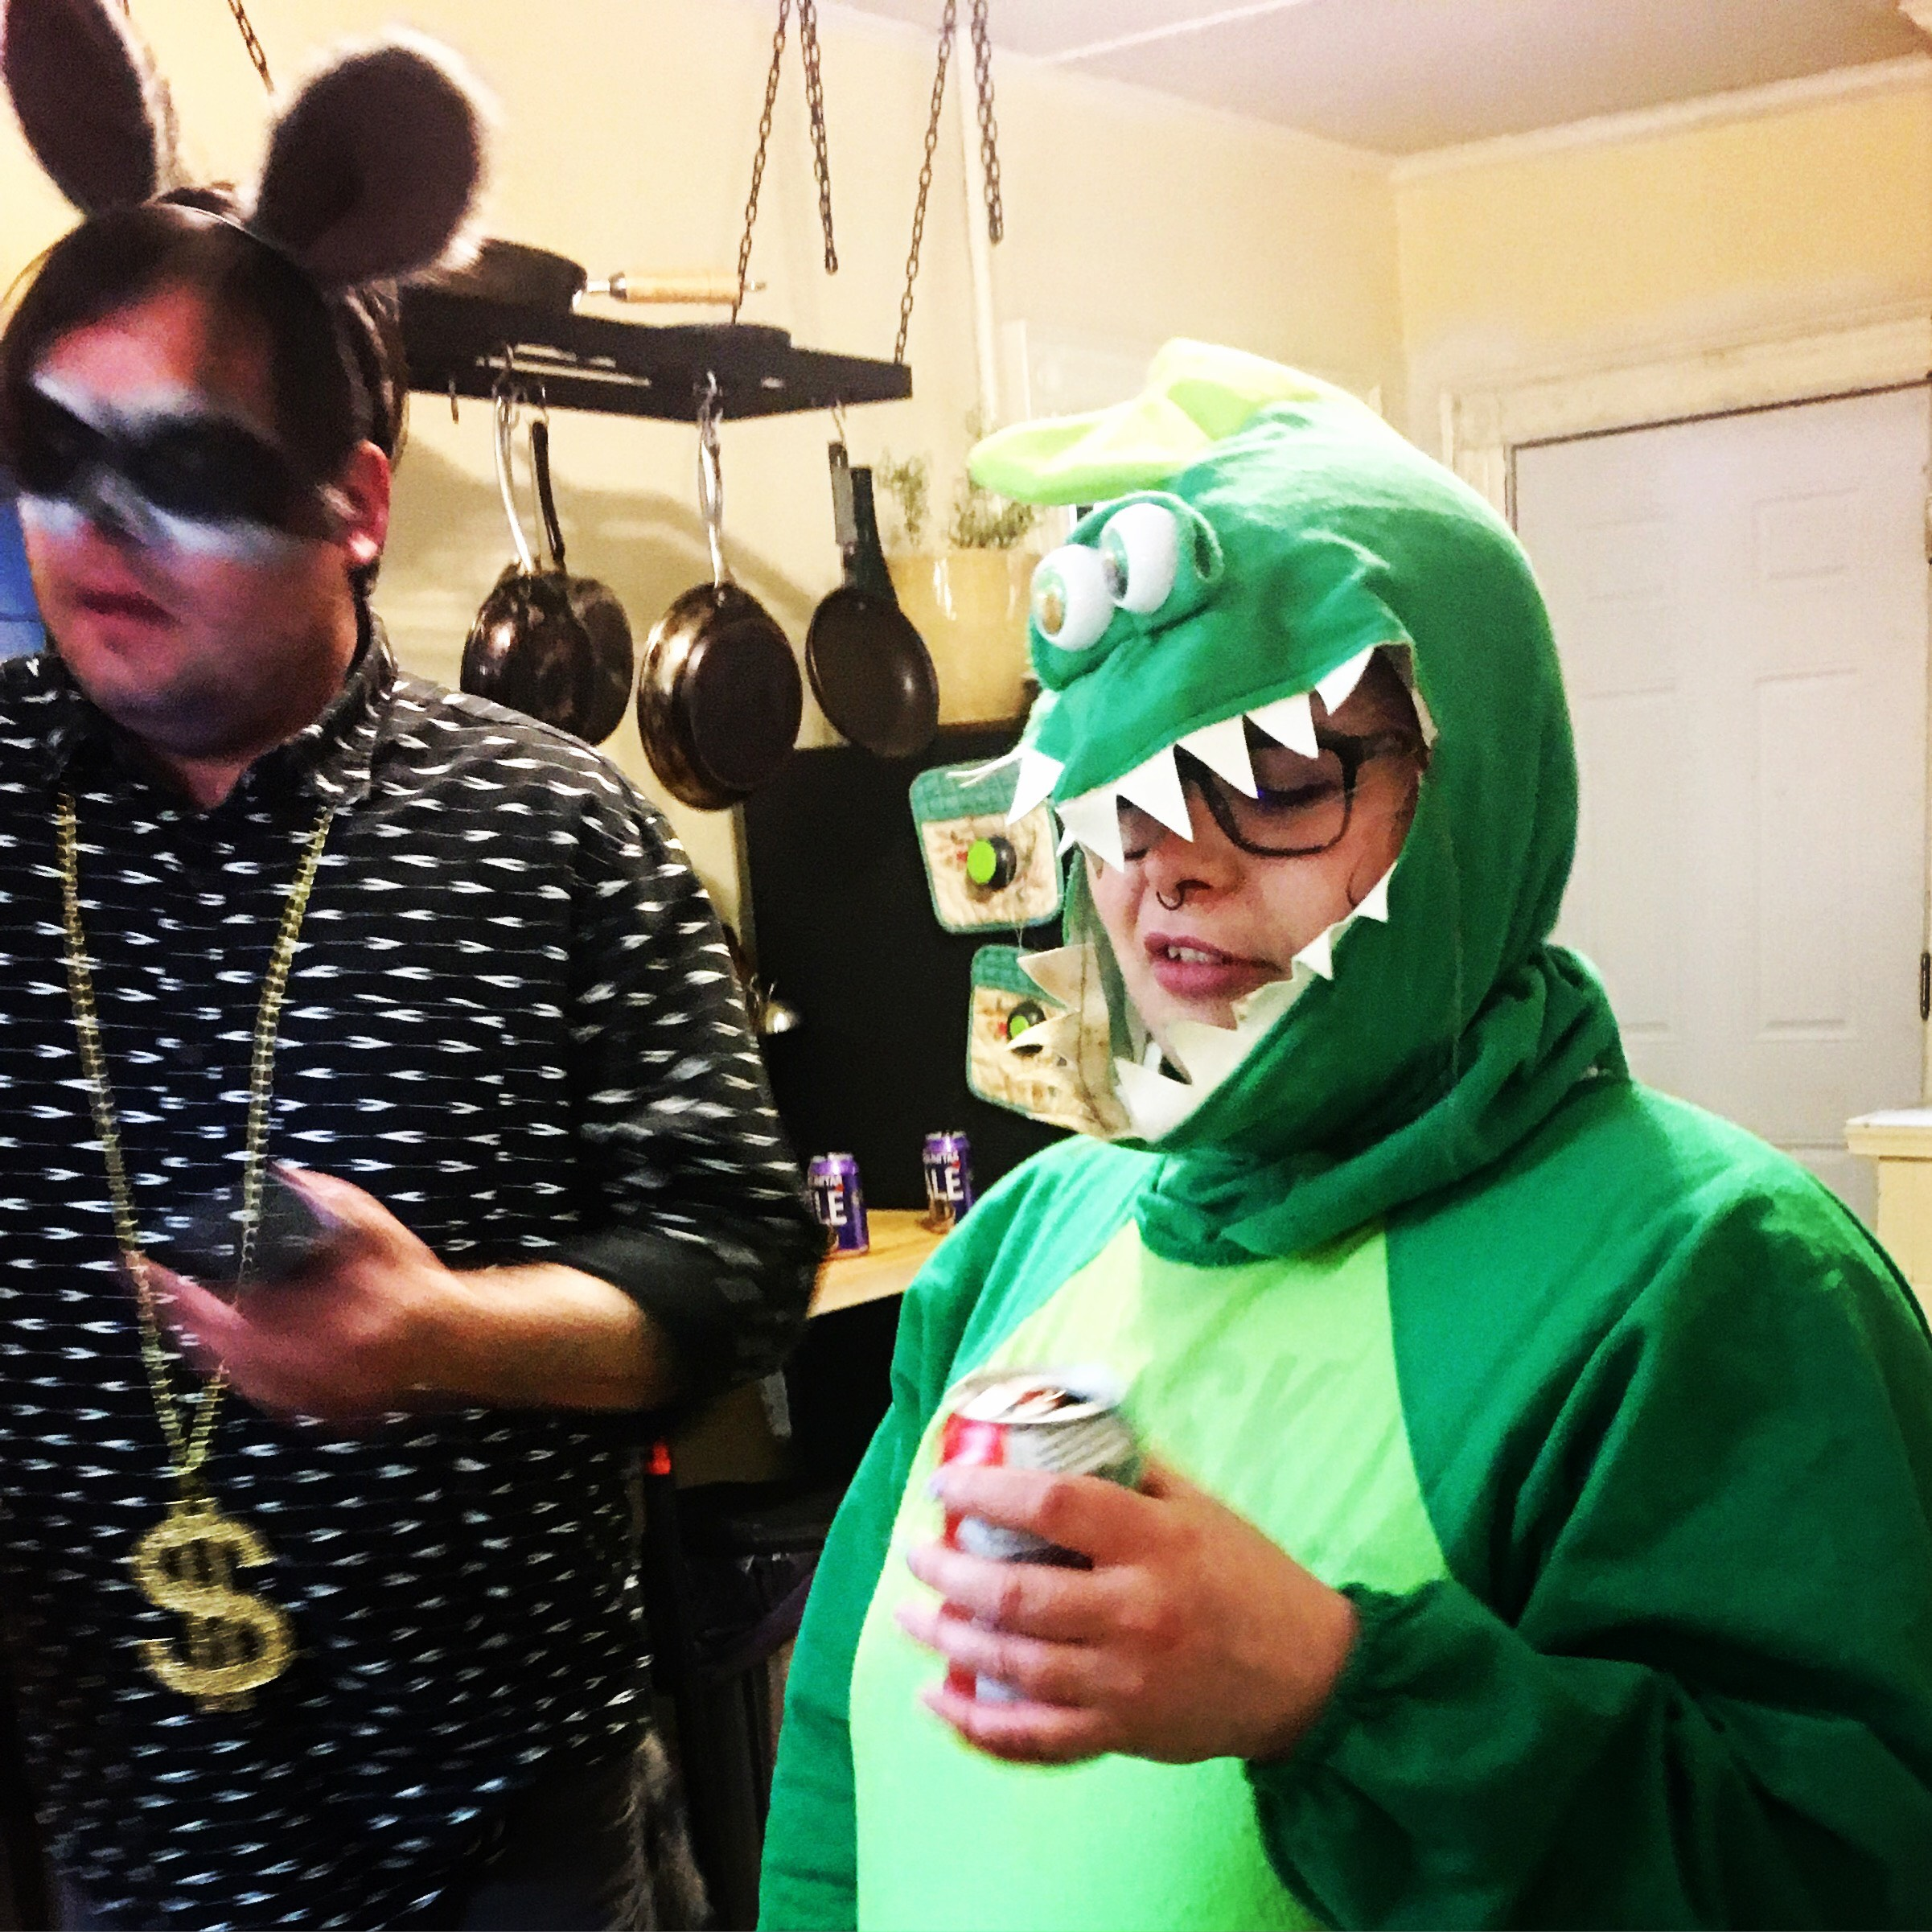 Will and Brittany dressed as their spirit animals (raccoon and Godzilla, respectively) at a video shoot we did.